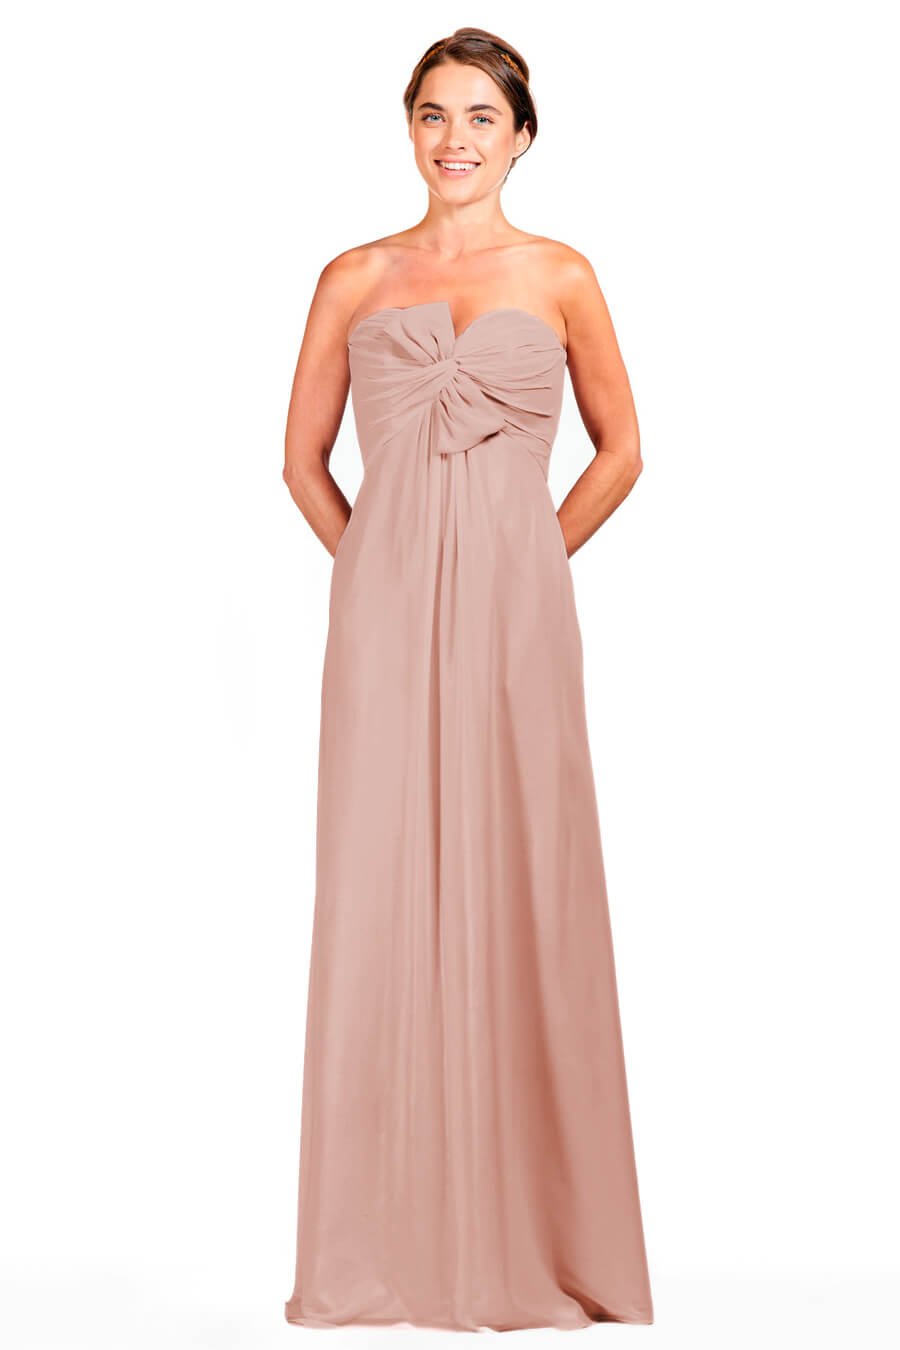 Bridesmaids bridesmaid dresses evening gowns flower girl filter by fabrics ombrellifo Gallery